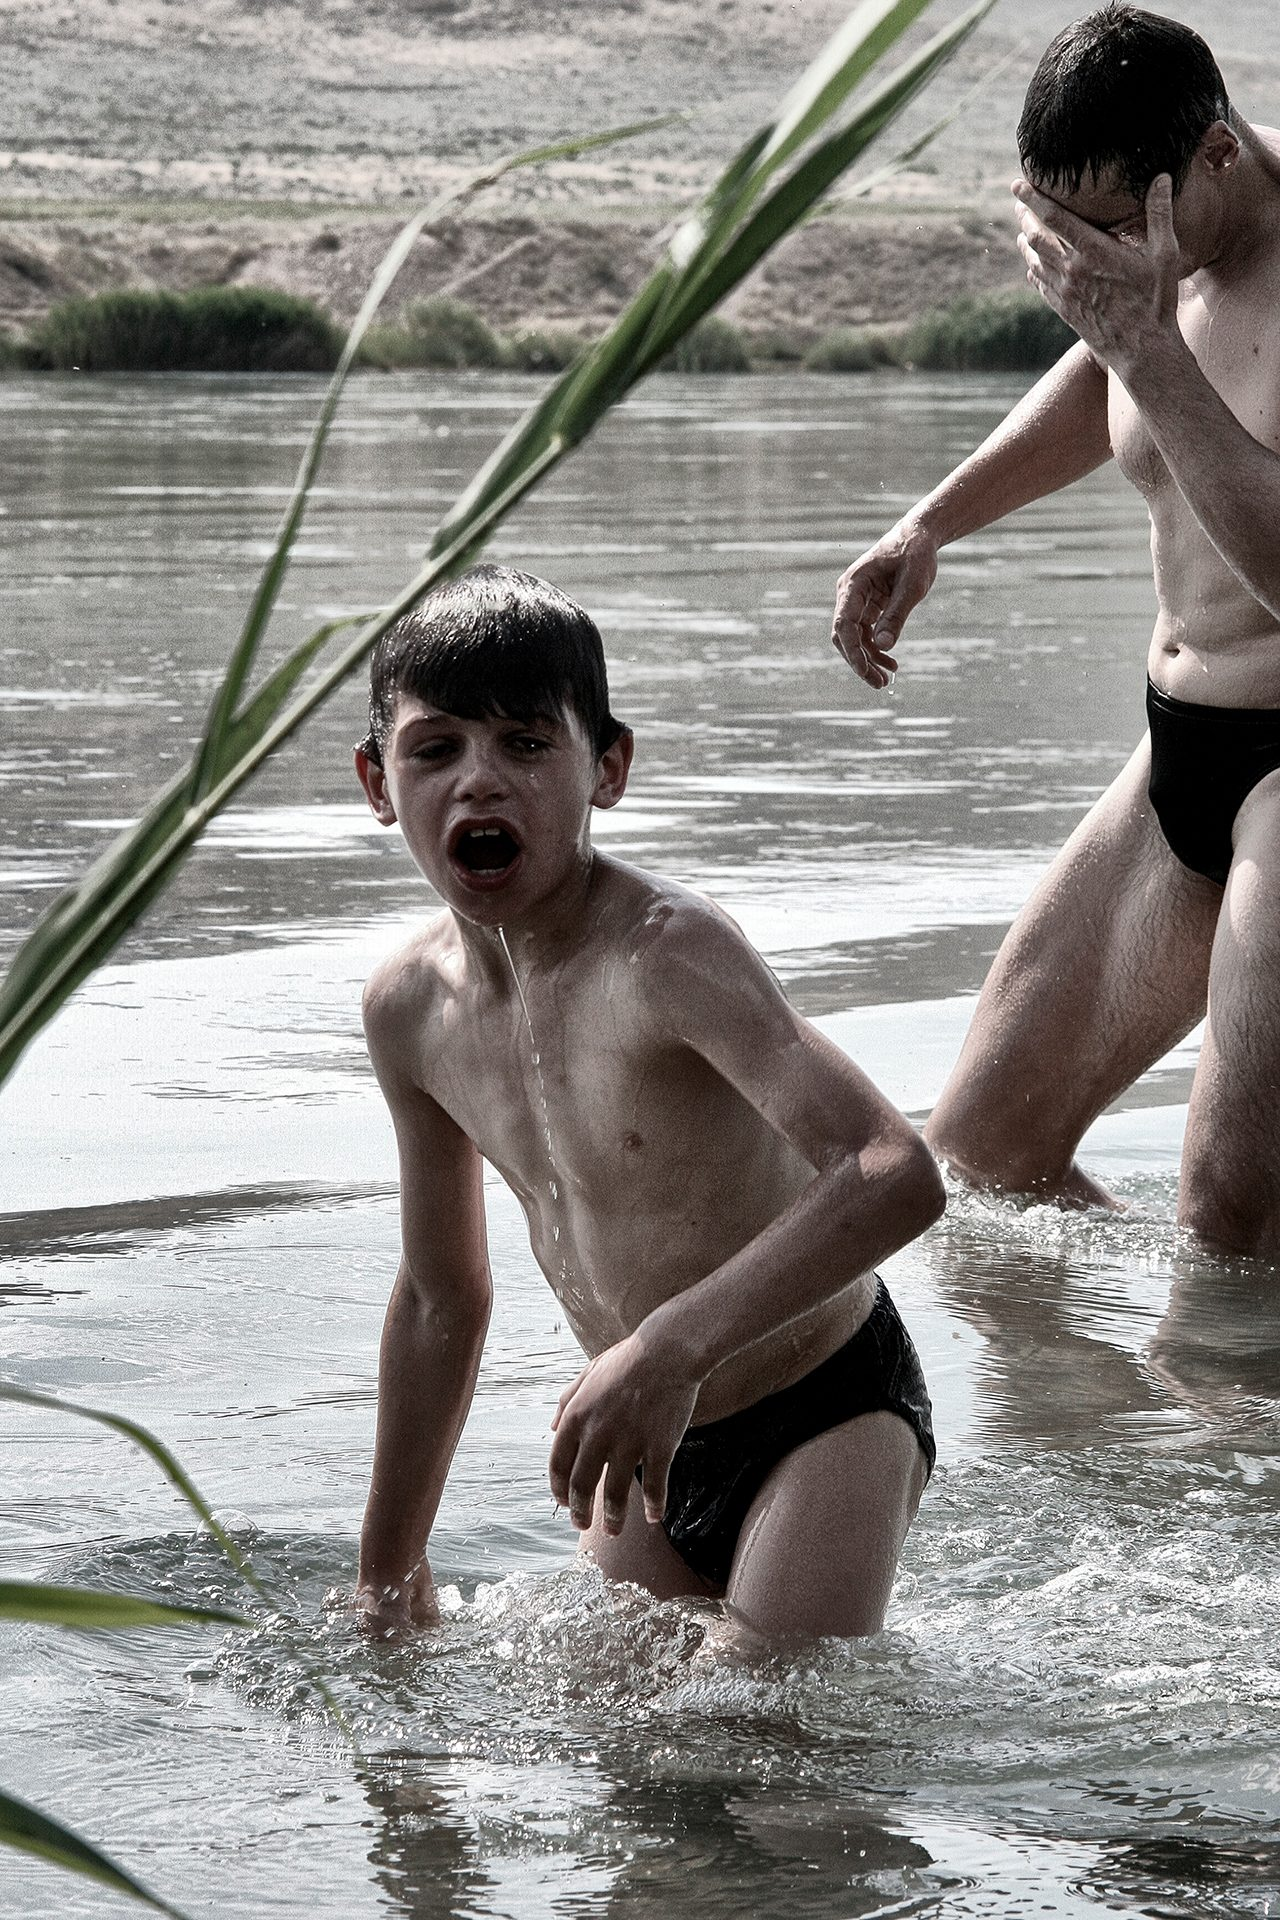 Father and son, Ili river, Almaty area, swimming, water, family, relations